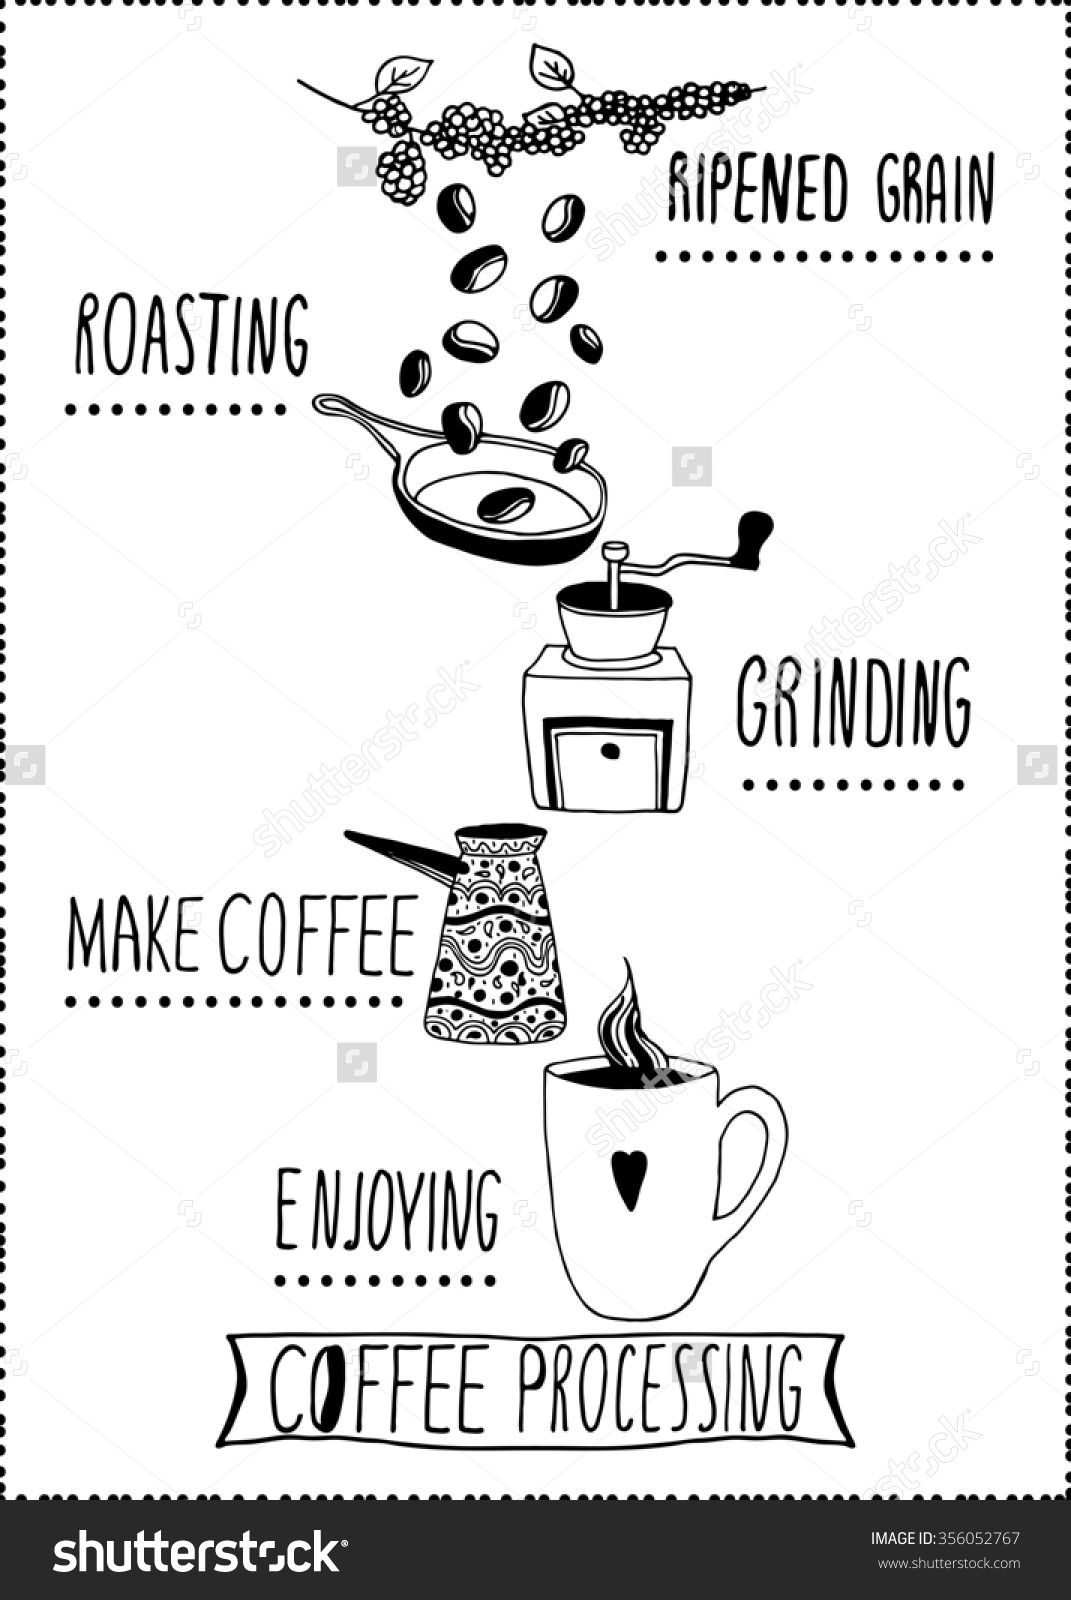 Coffee Processing Illustration Hand Drawn Style Isolated